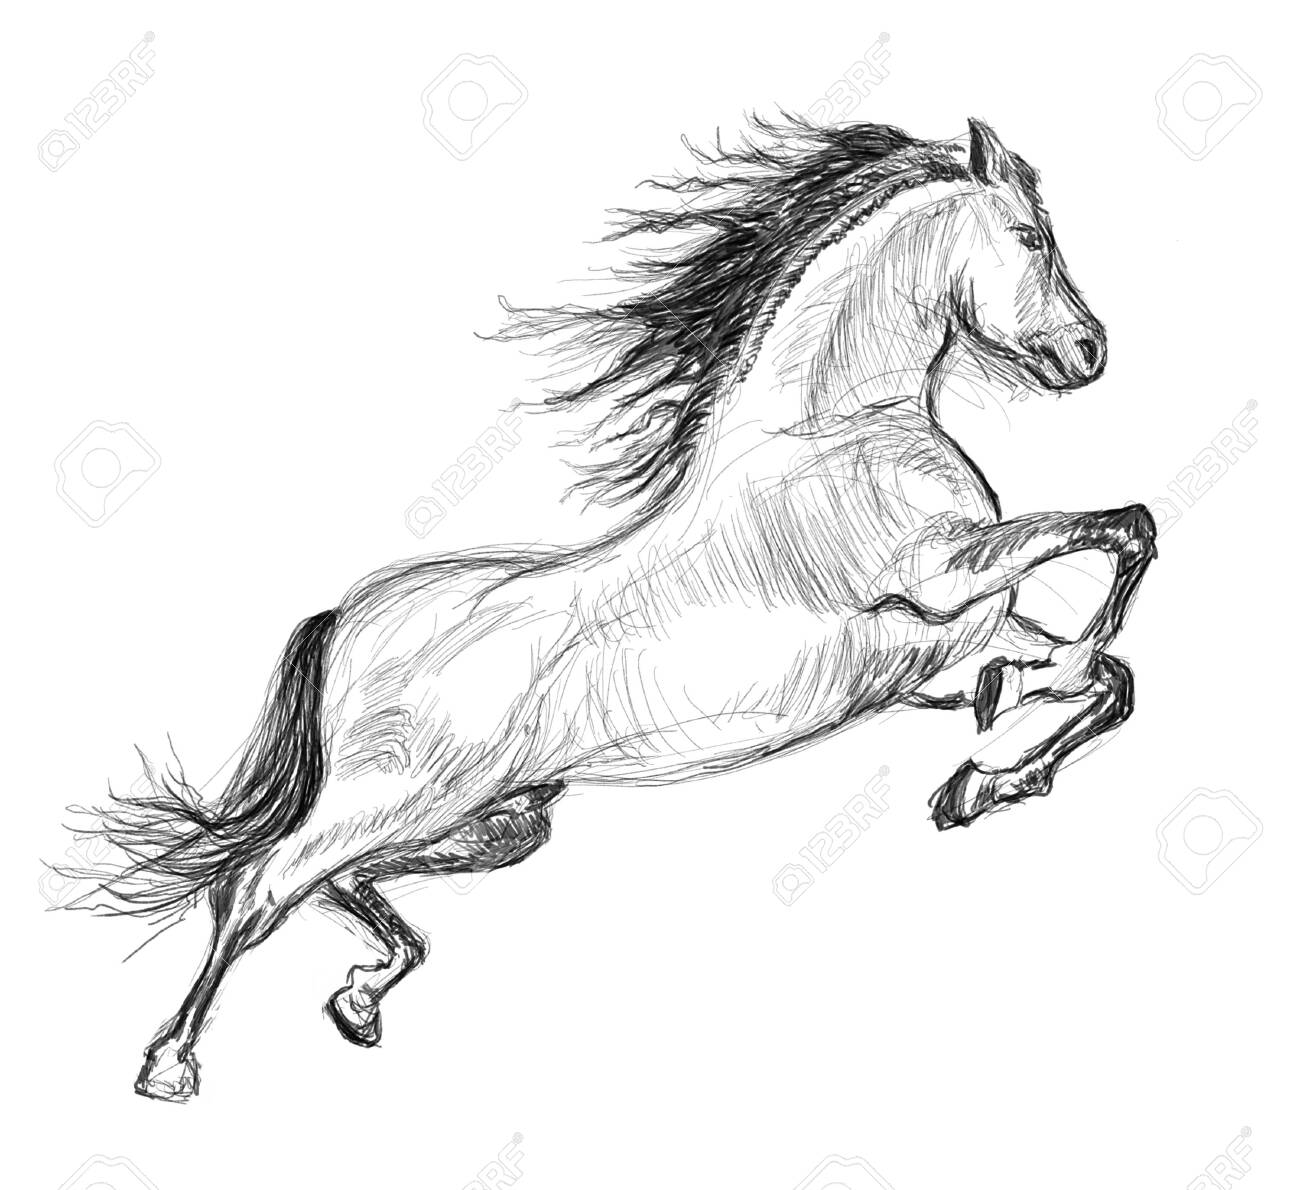 Horse Hand Drawn Illustration Art Design Wall Inspiration Stock Photo Picture And Royalty Free Image Image 135359290